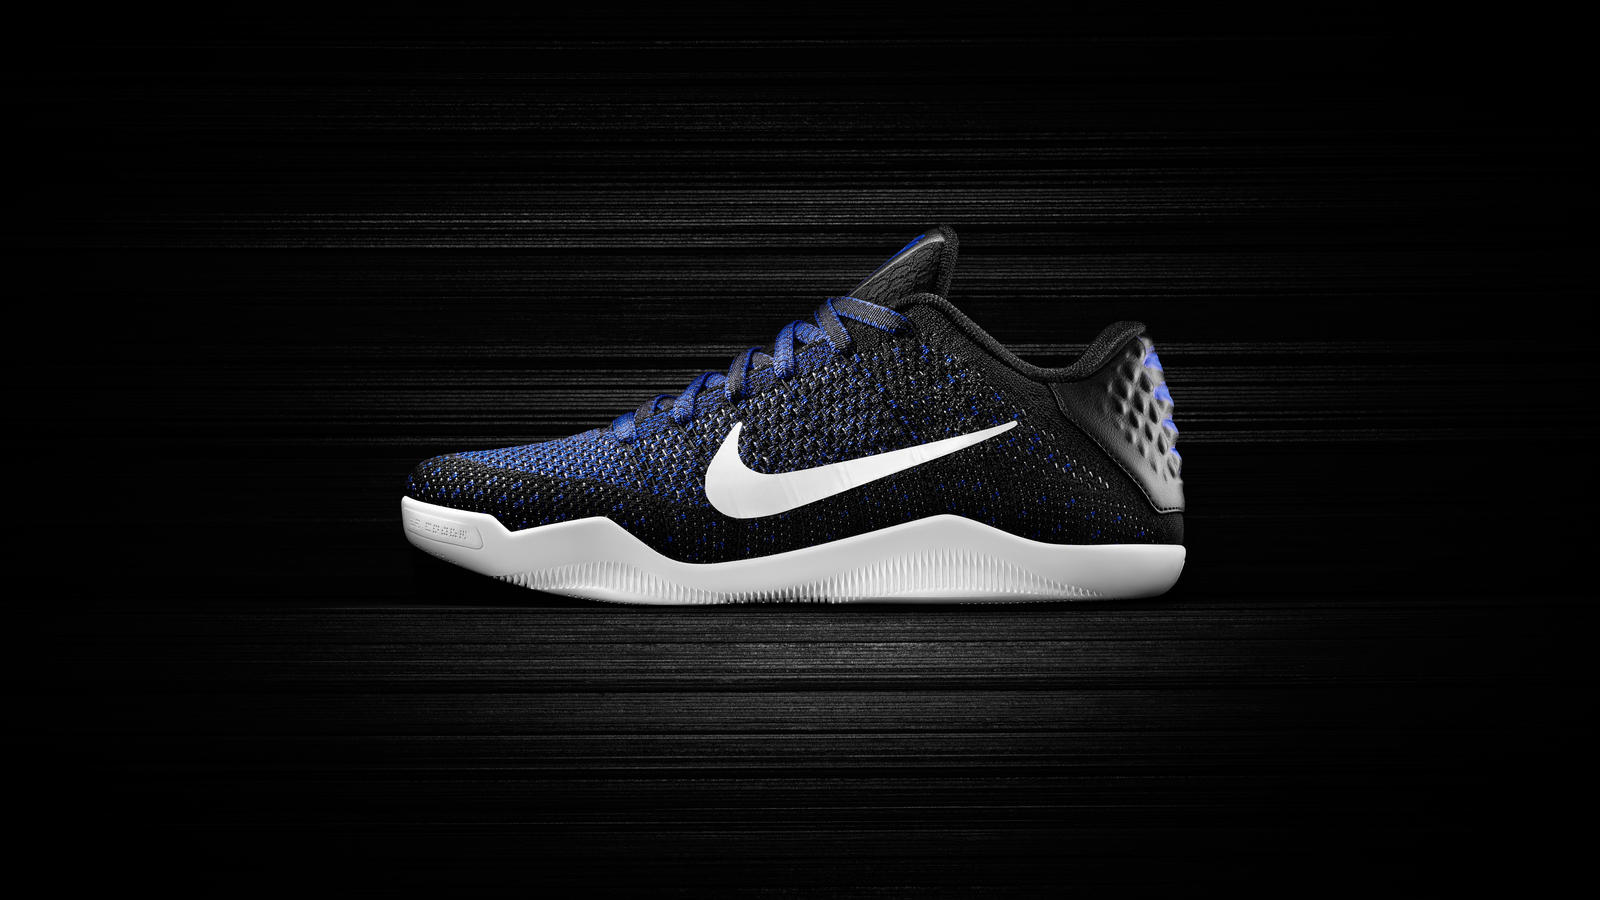 Kobe 11 Muse Pack: Mark Parker pays tribute to The Black Mamba